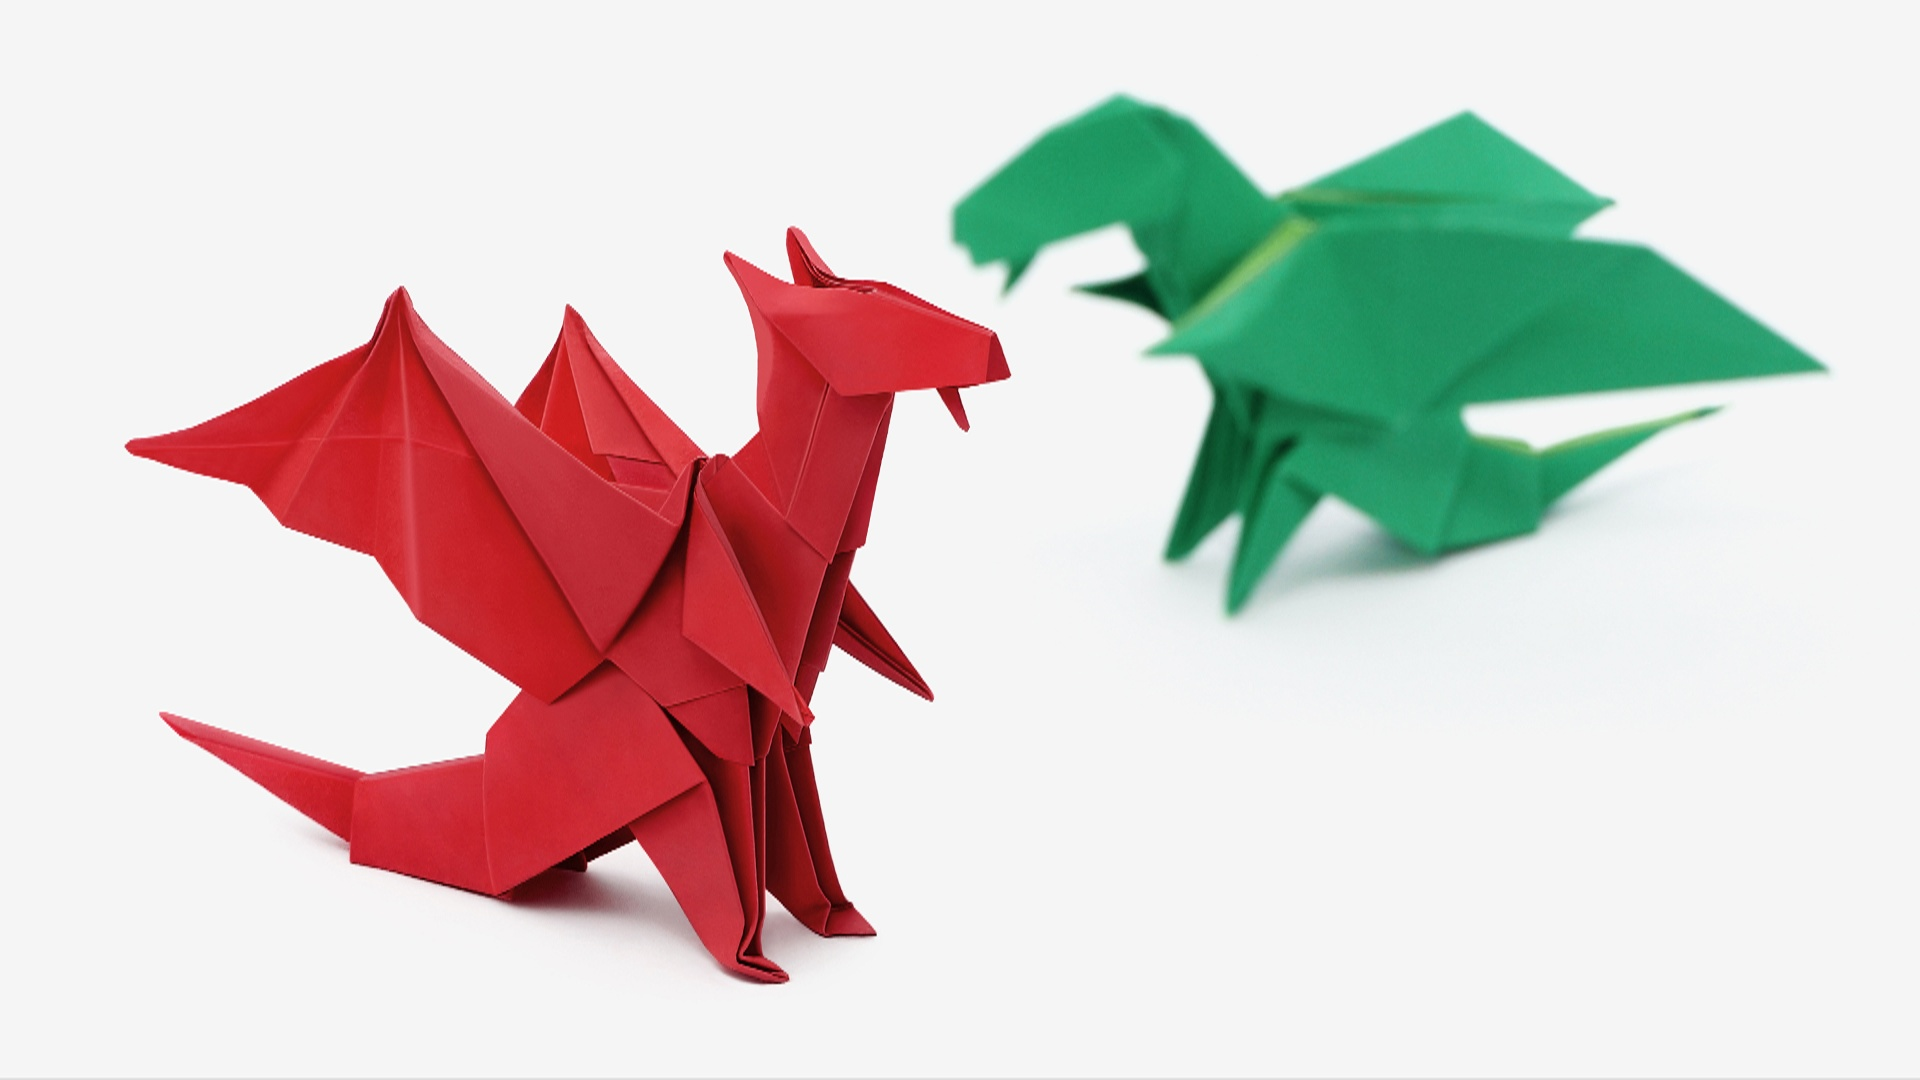 origami dragons \u2013 video and diagrams \u2013 jo nakashimamy origami dragon is one of my favorite creations it\u0027s relatively easy to fold and i liked the result a lot the base of this model is very simple half